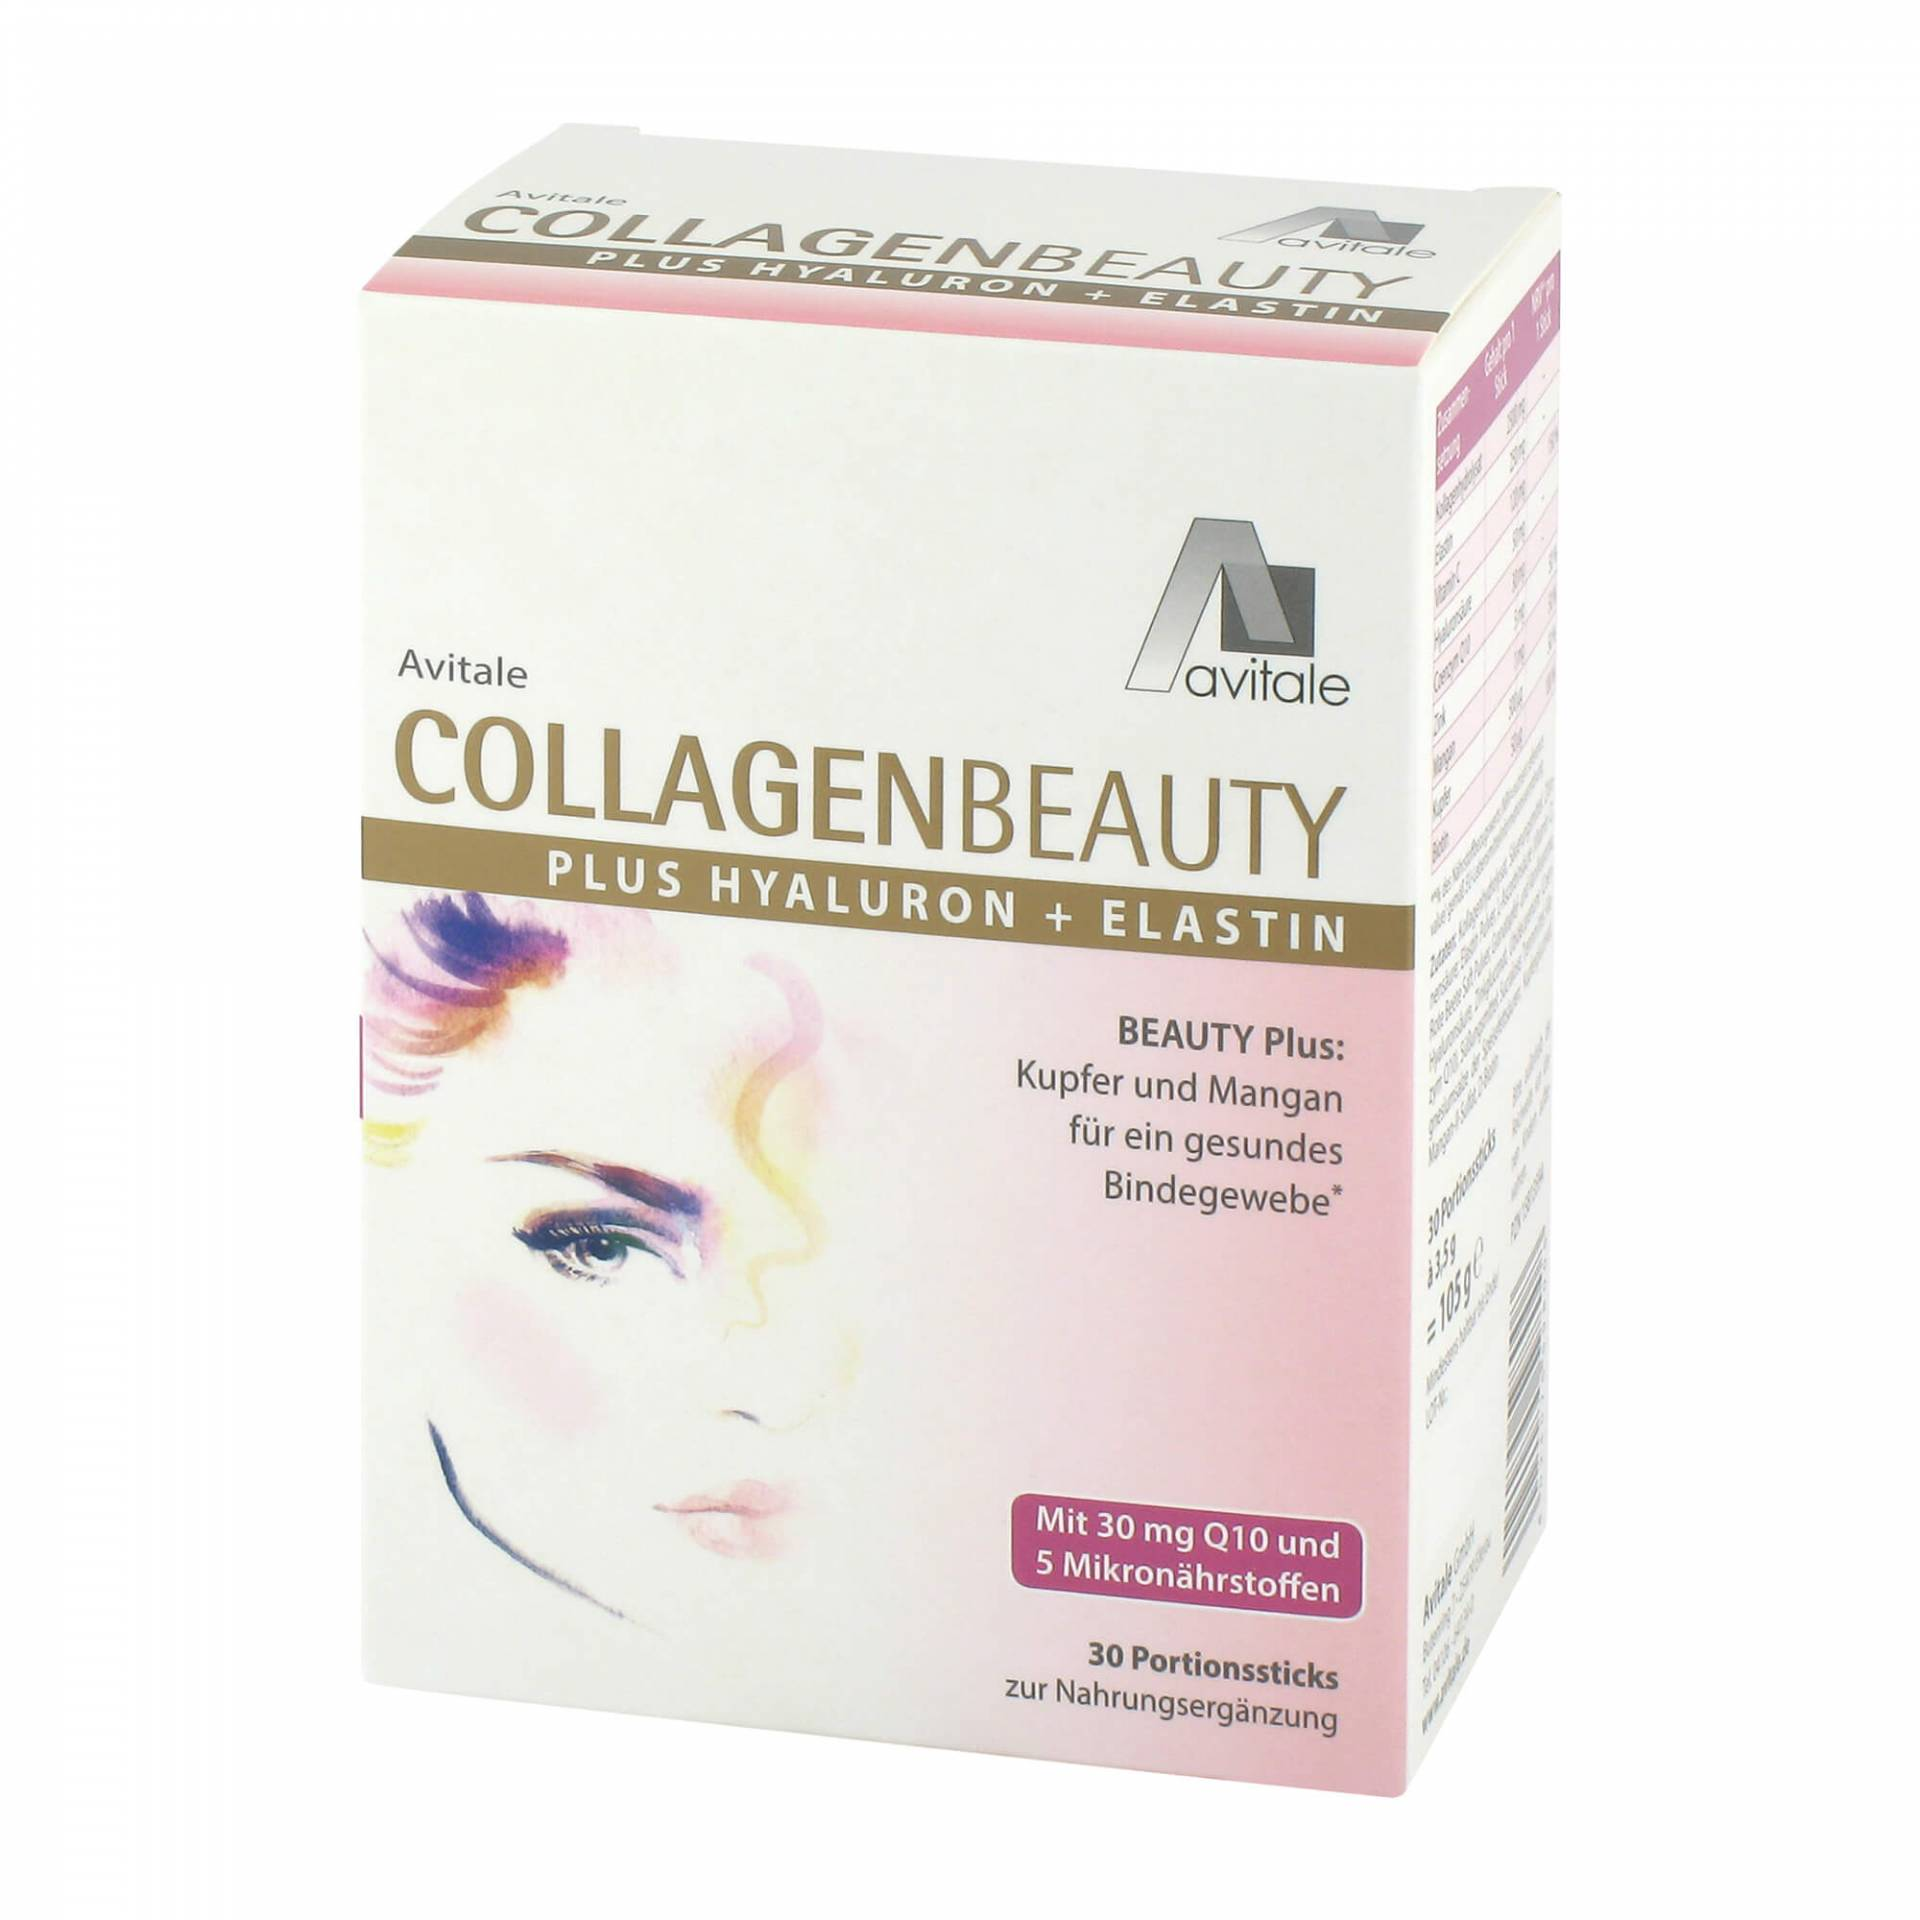 Collagenbeauty plus Hyaluron + Elastin Sticks von Avitale GmbH